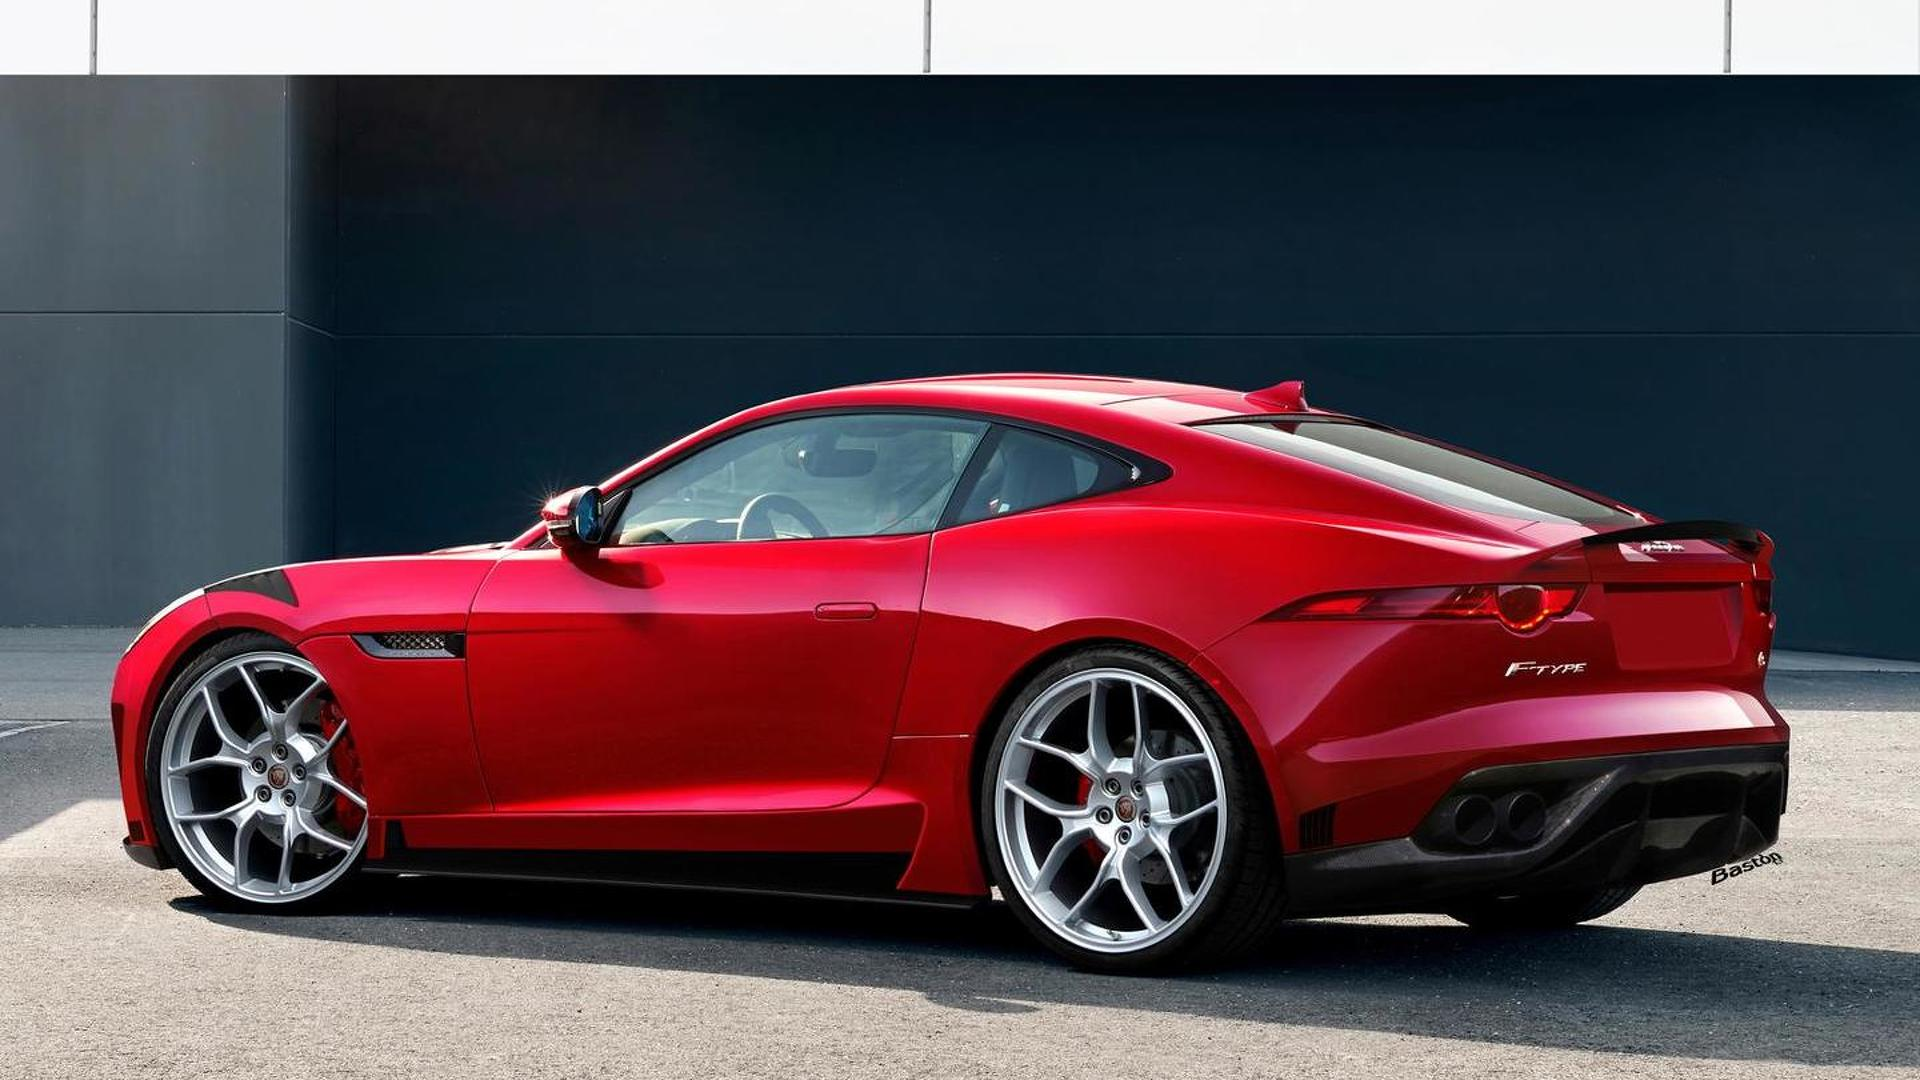 jaguar f type coupe rs and rs gt editions confirmed and rendered. Black Bedroom Furniture Sets. Home Design Ideas